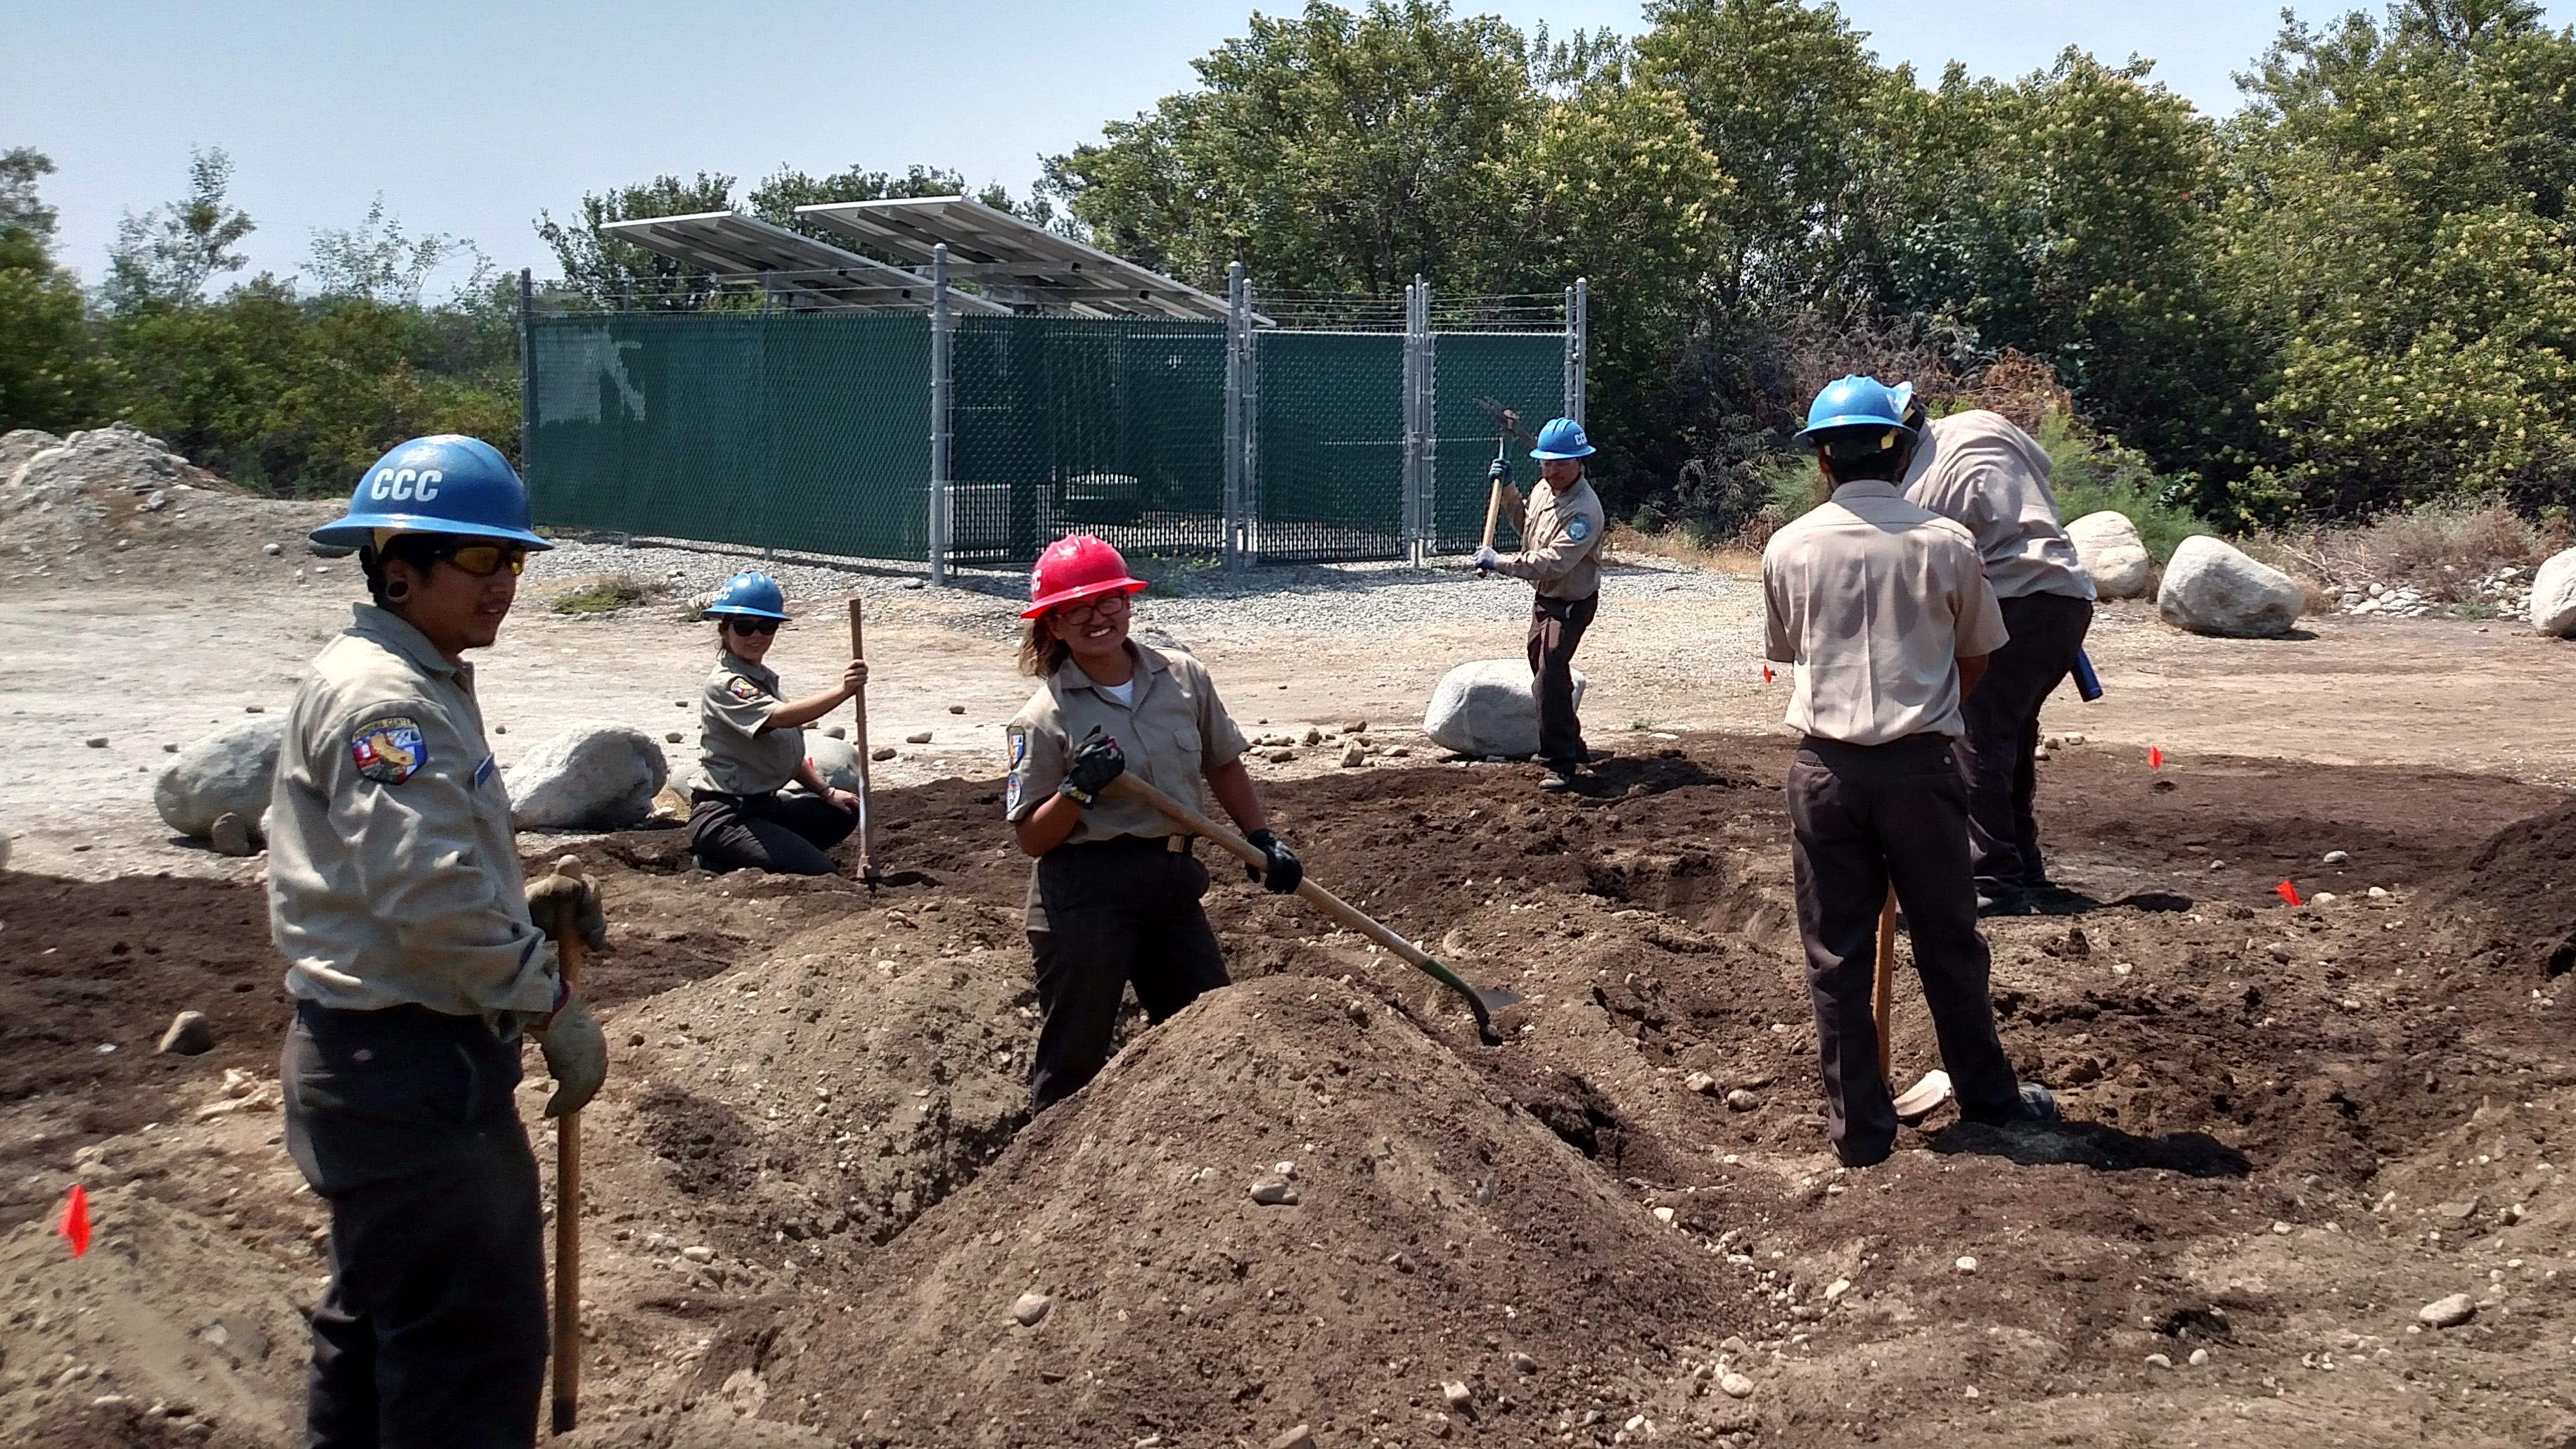 Corpsmembers volunteering at the Drought Tolerant Demonstration Garden.